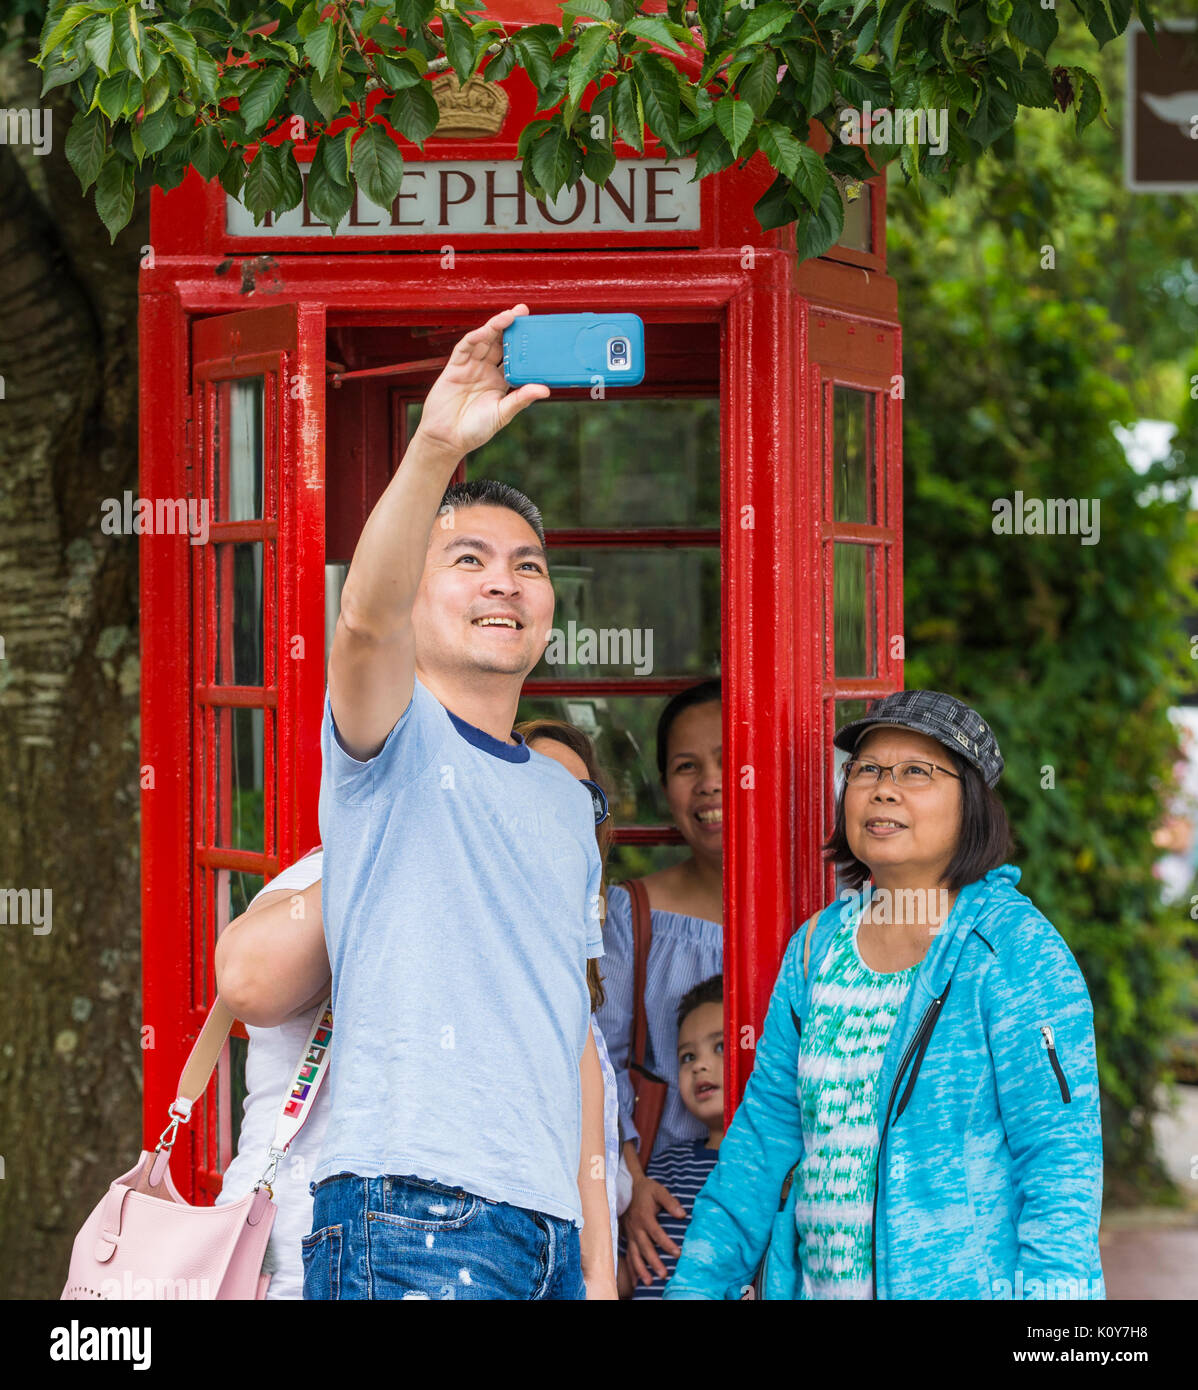 Asian family of tourists taking a selfie outside a red telephone box in Arundel, West Sussex, England, UK. - Stock Image